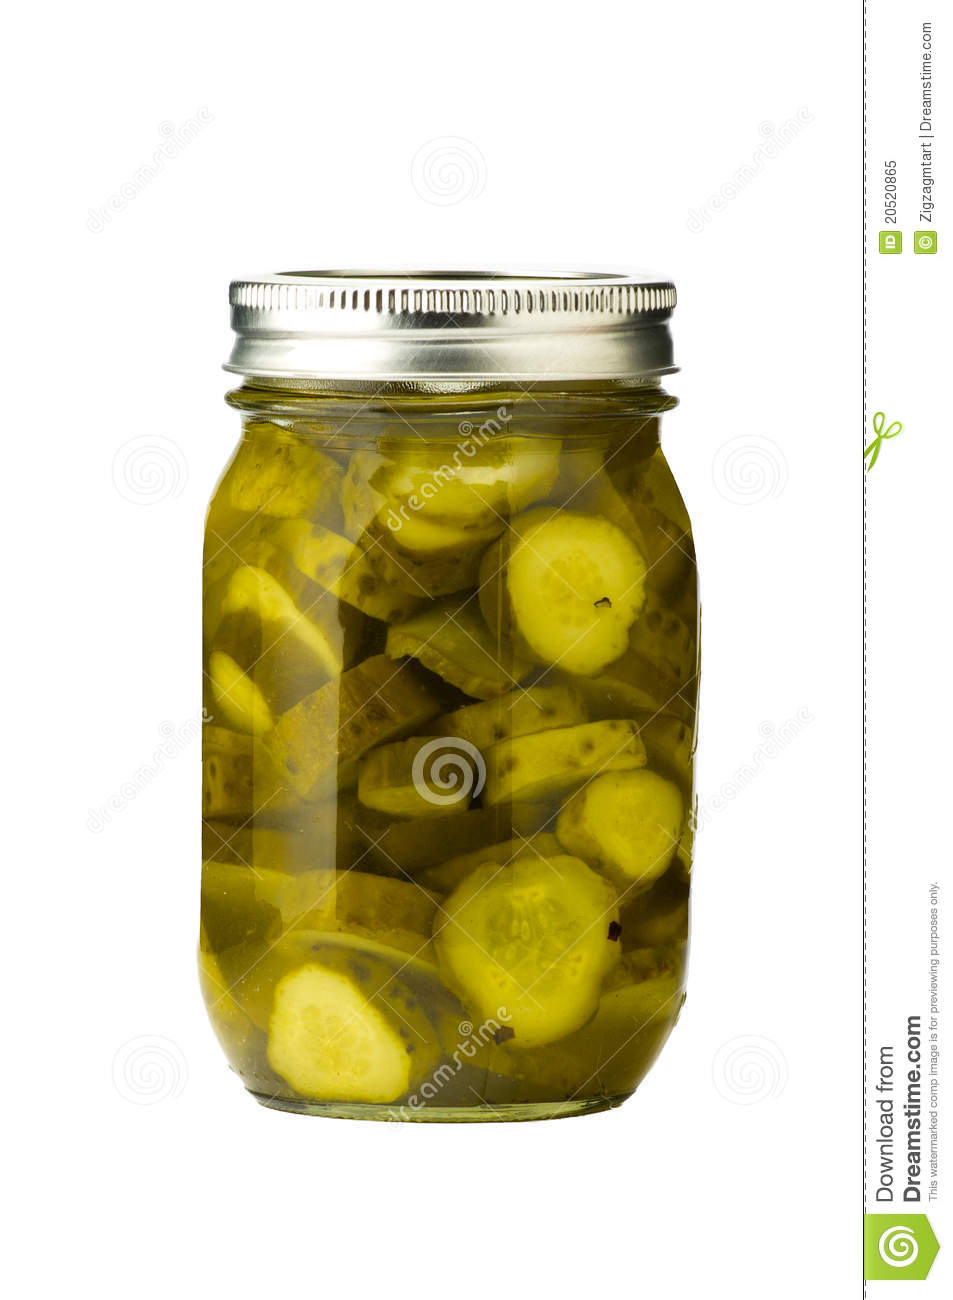 Sliced Pickles Royalty Free Stock Photo - Image: 20520865